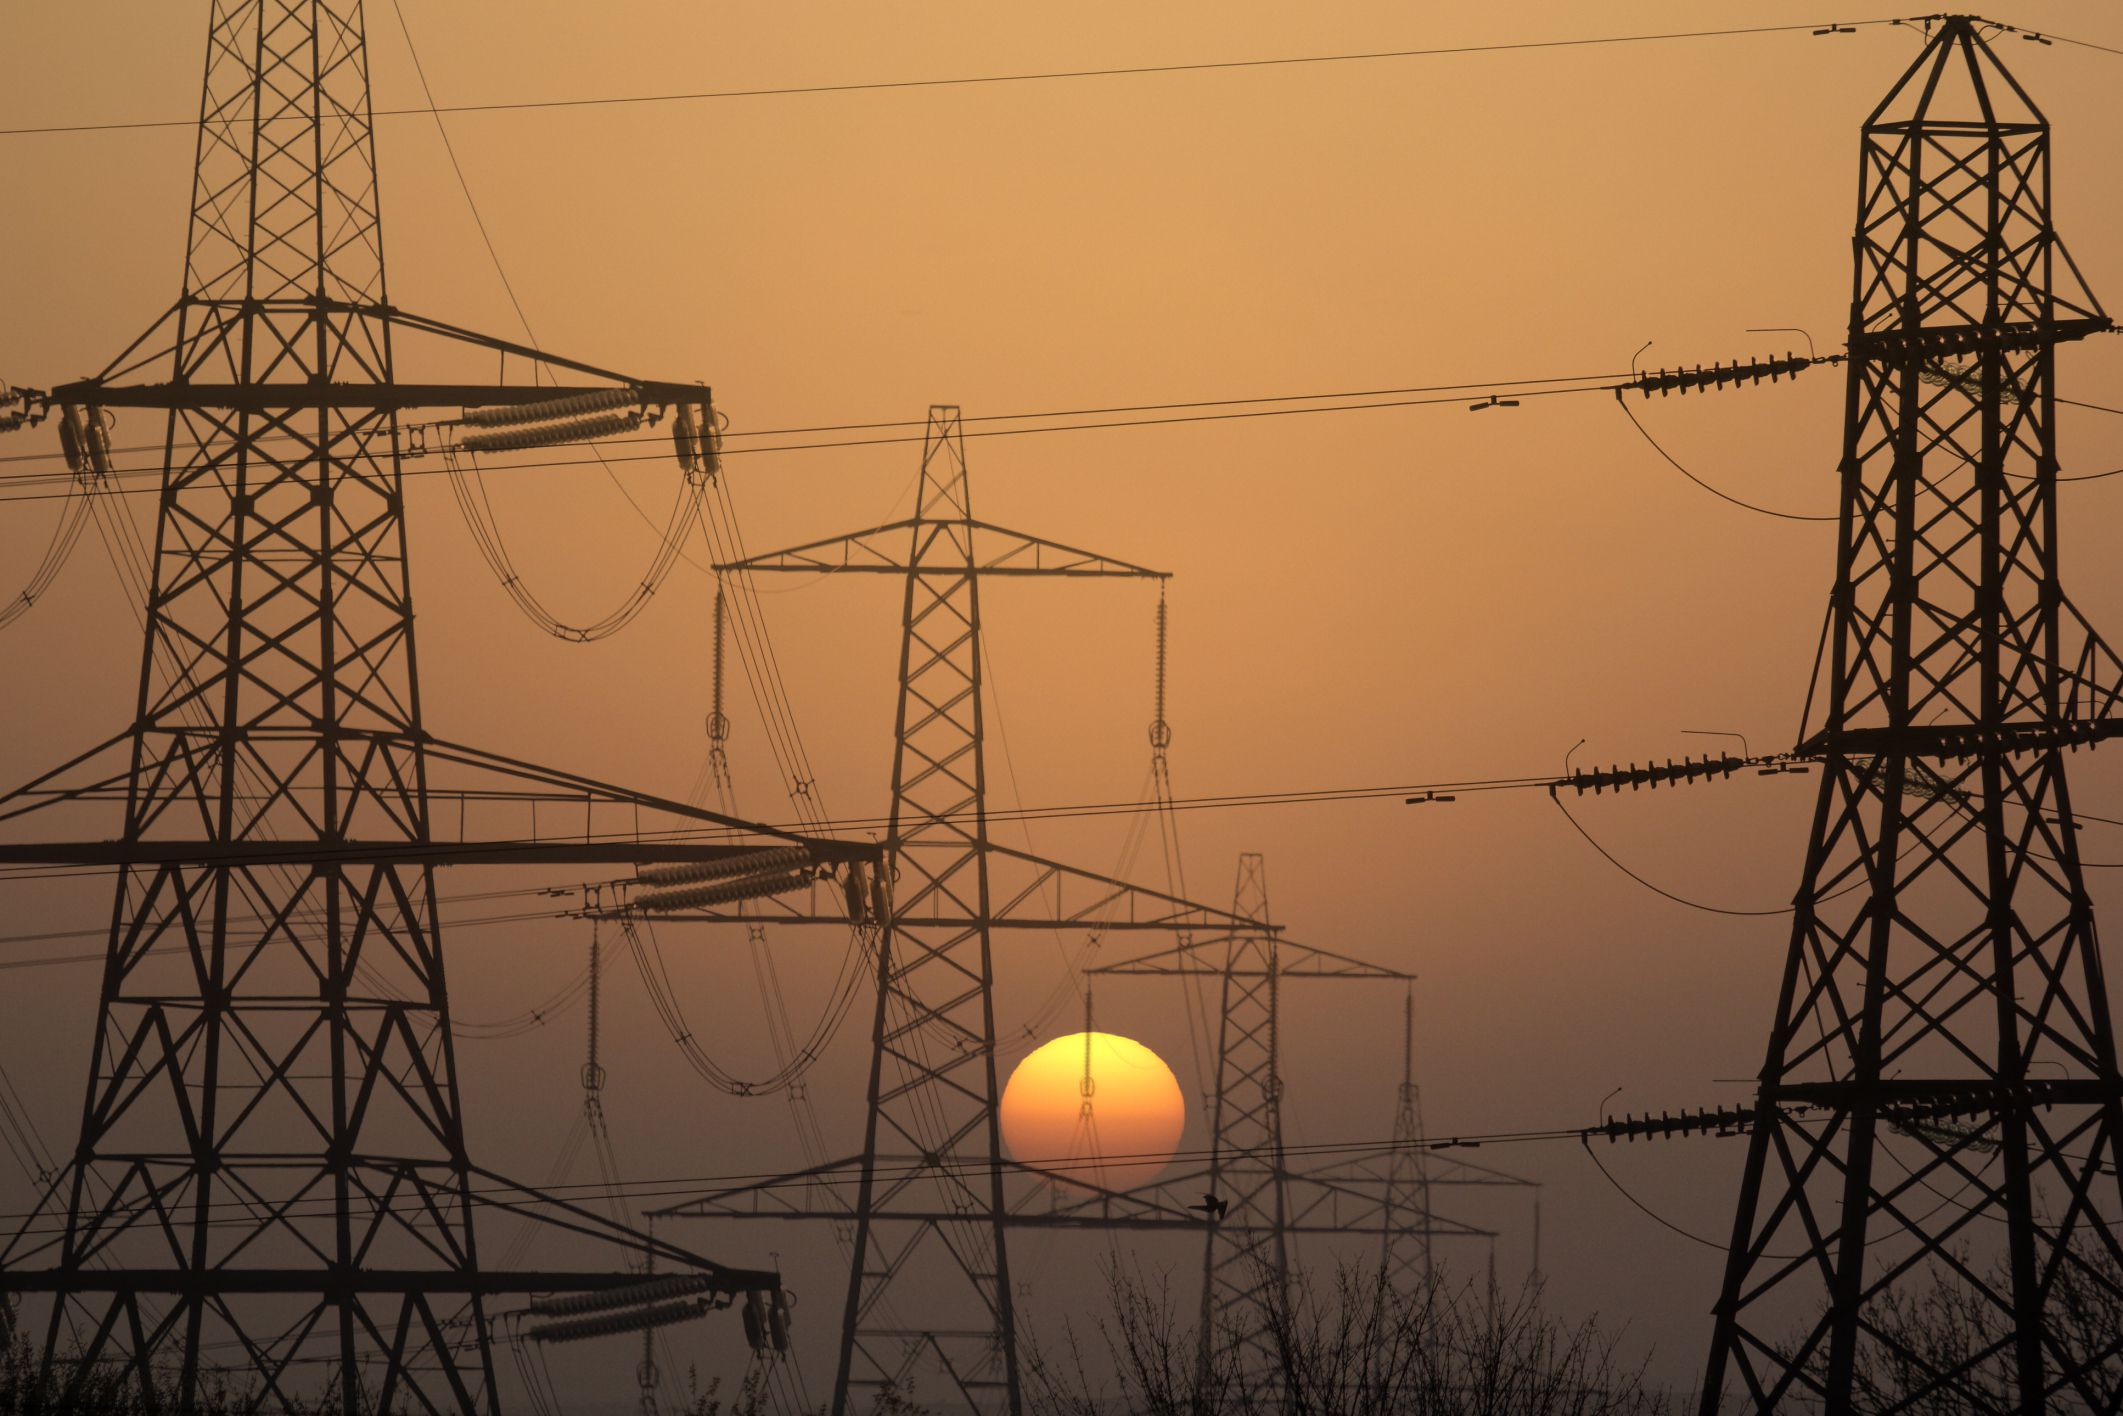 Best Cd Rates >> Electric Cooperatives vs. Commercial Utilities